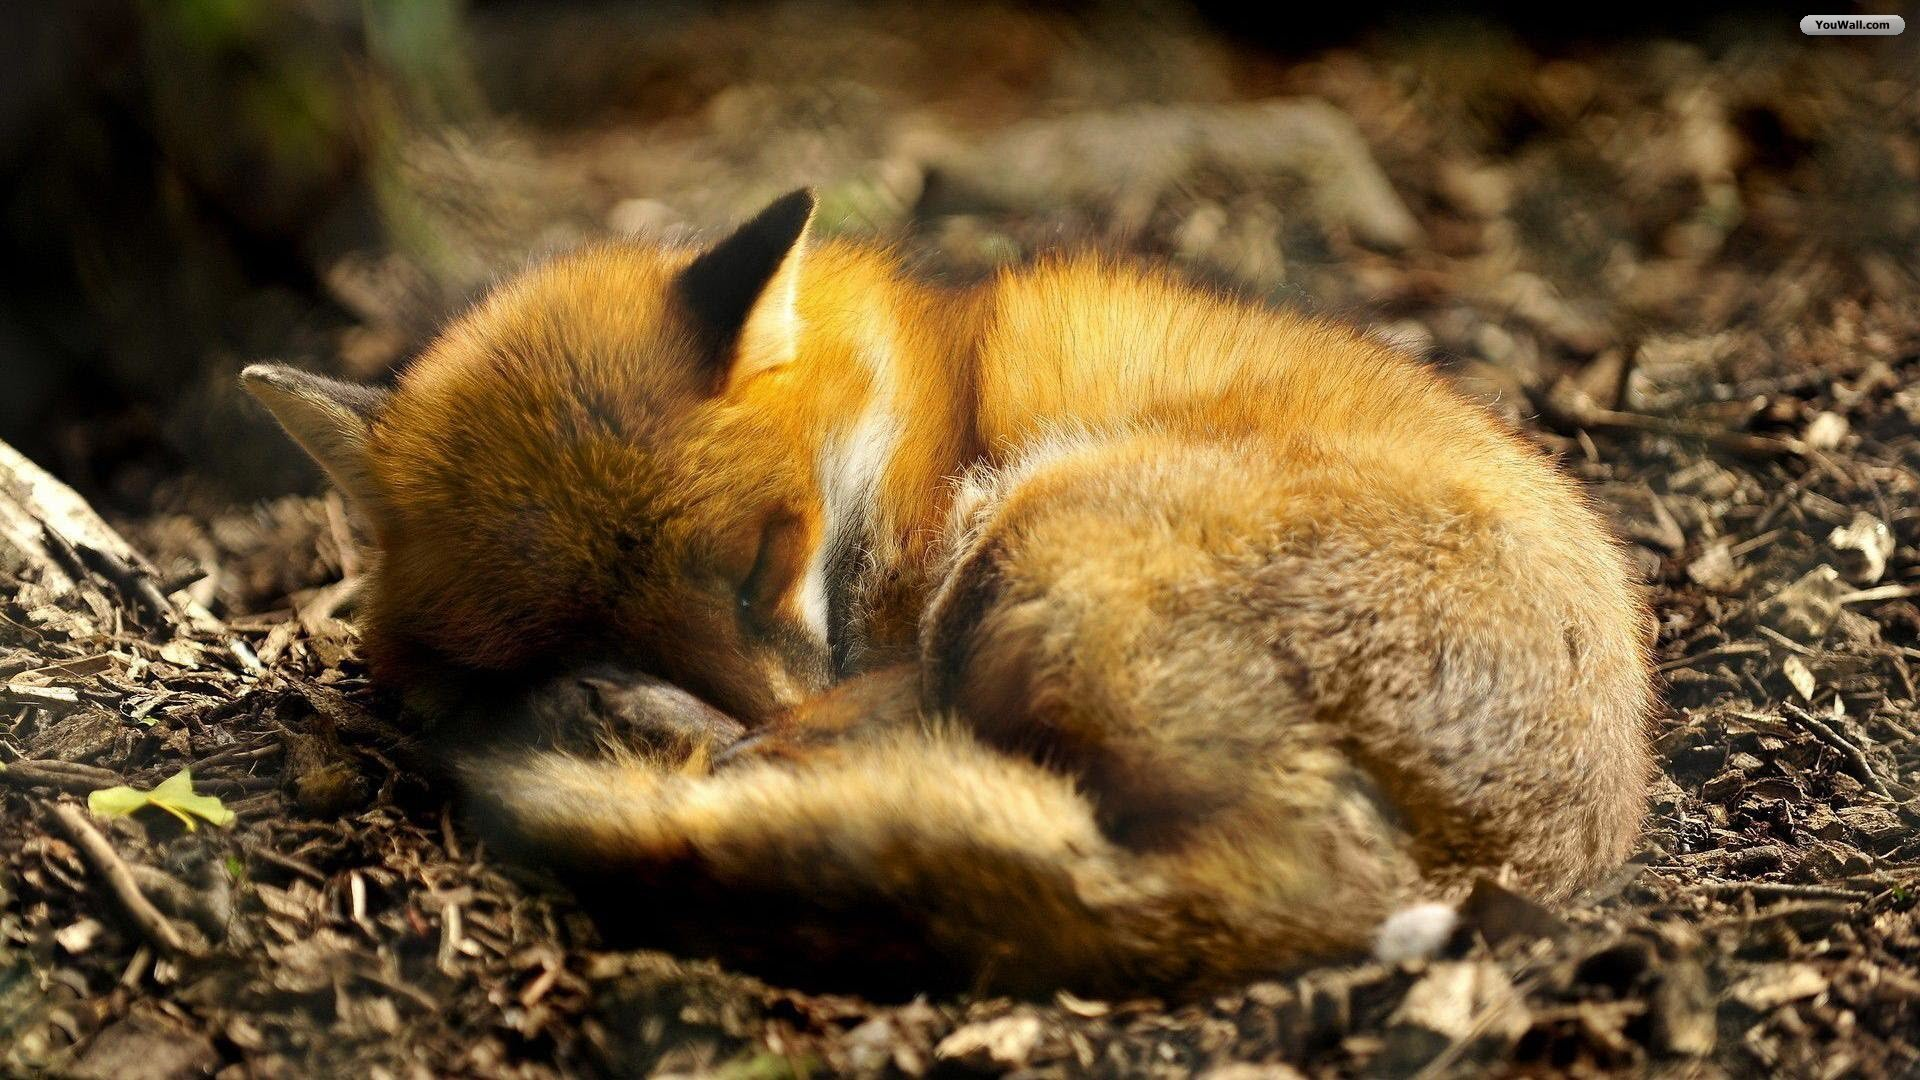 The Cute Wallpapers Ever For Computer Fox Cuteconnoisseur